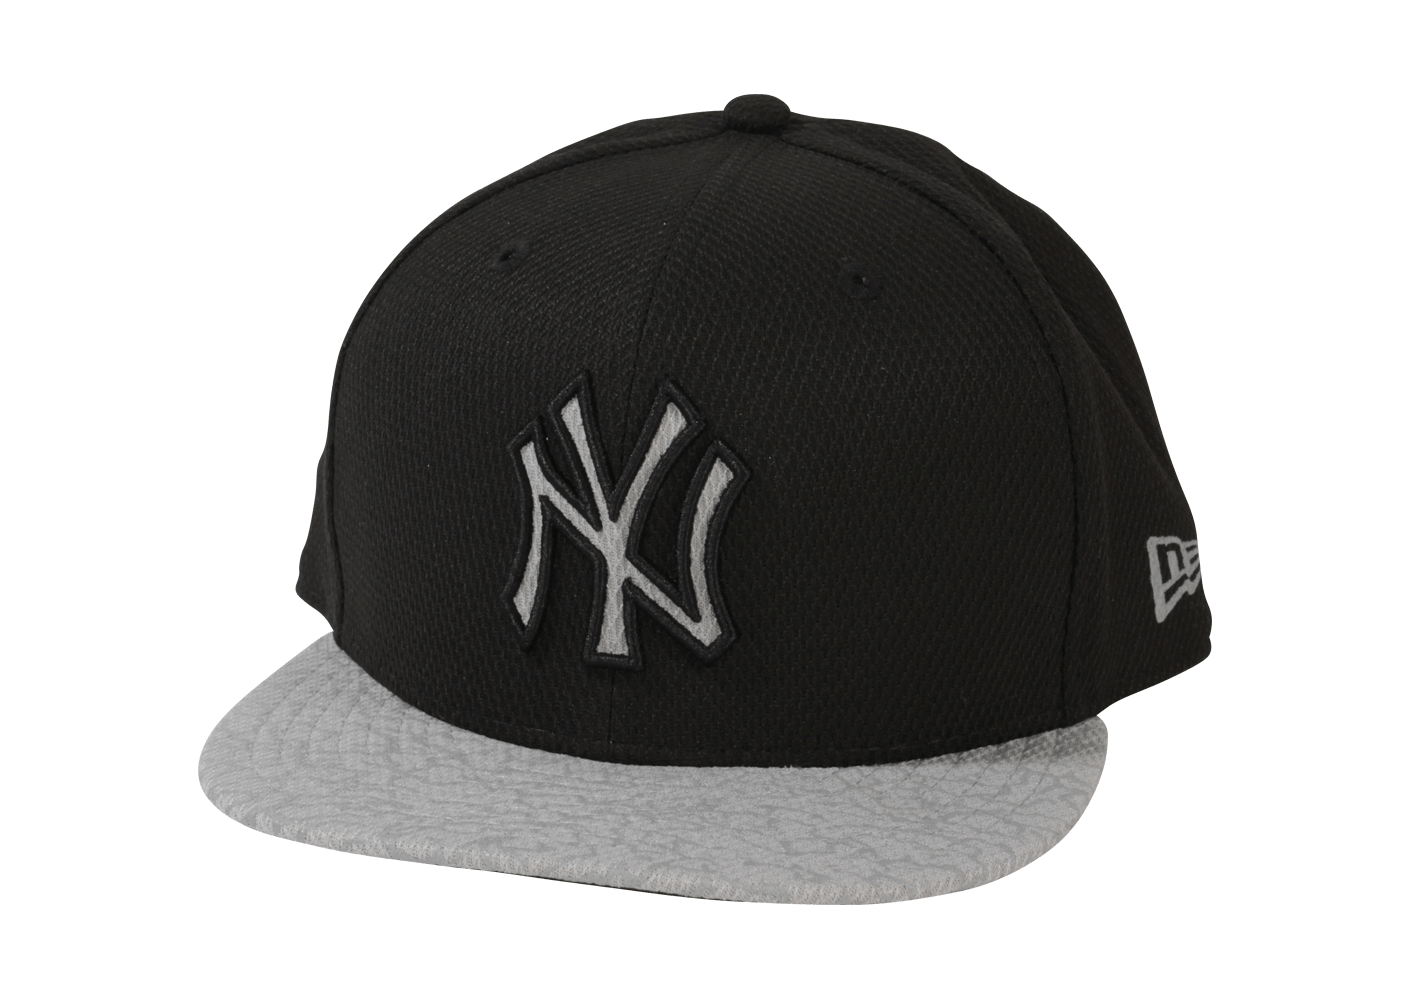 new era casquette snapback ny reflective noir argent casquettes chausport. Black Bedroom Furniture Sets. Home Design Ideas